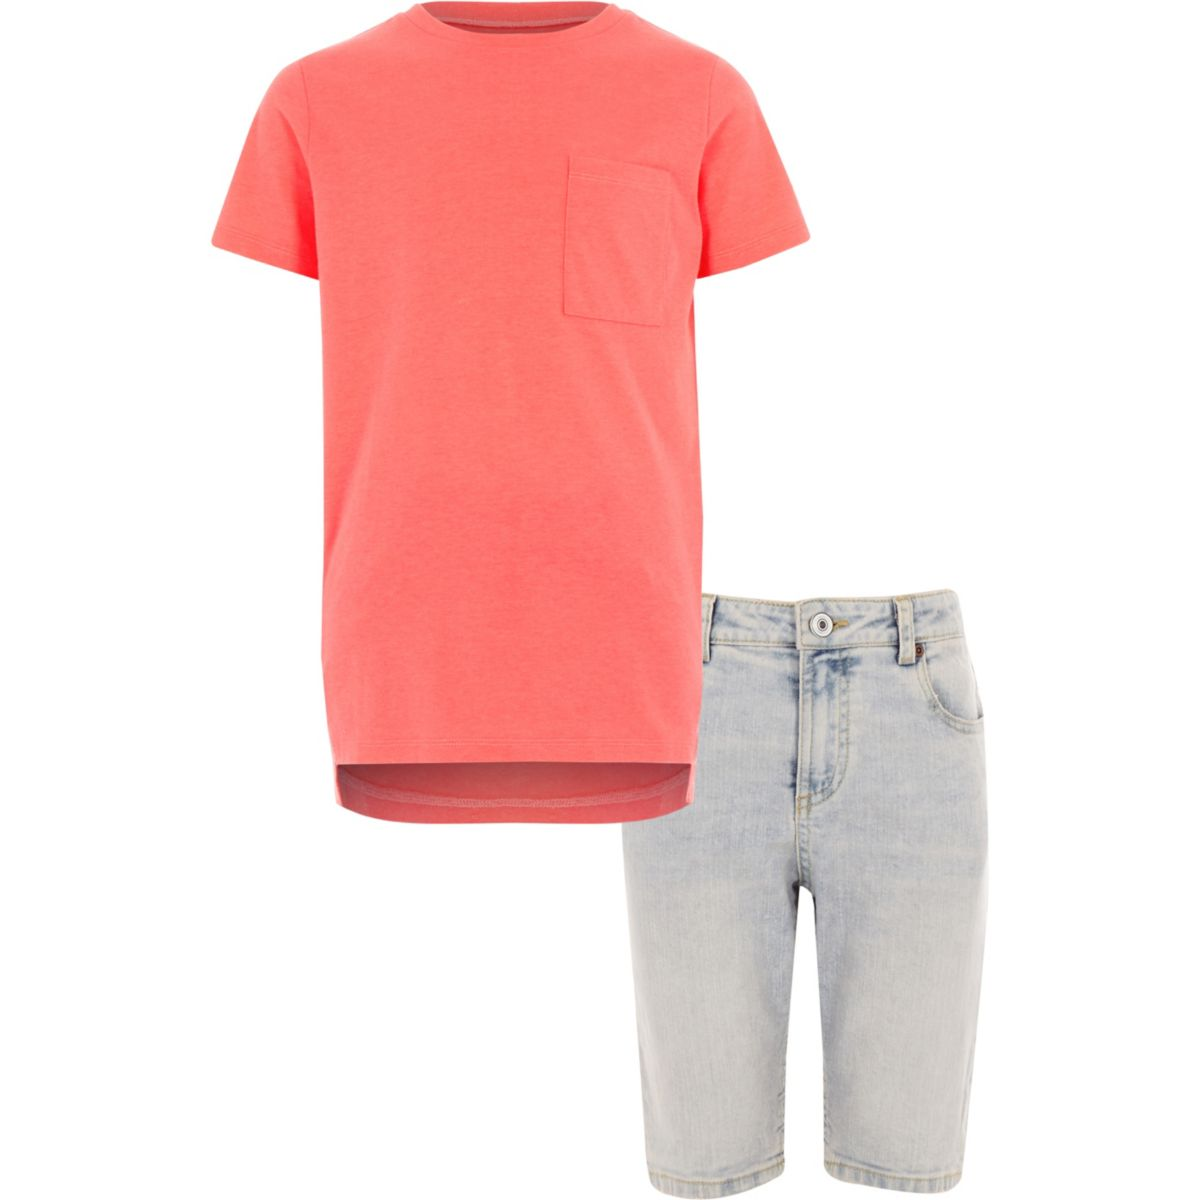 Boys coral T-shirt and denim shorts outfit